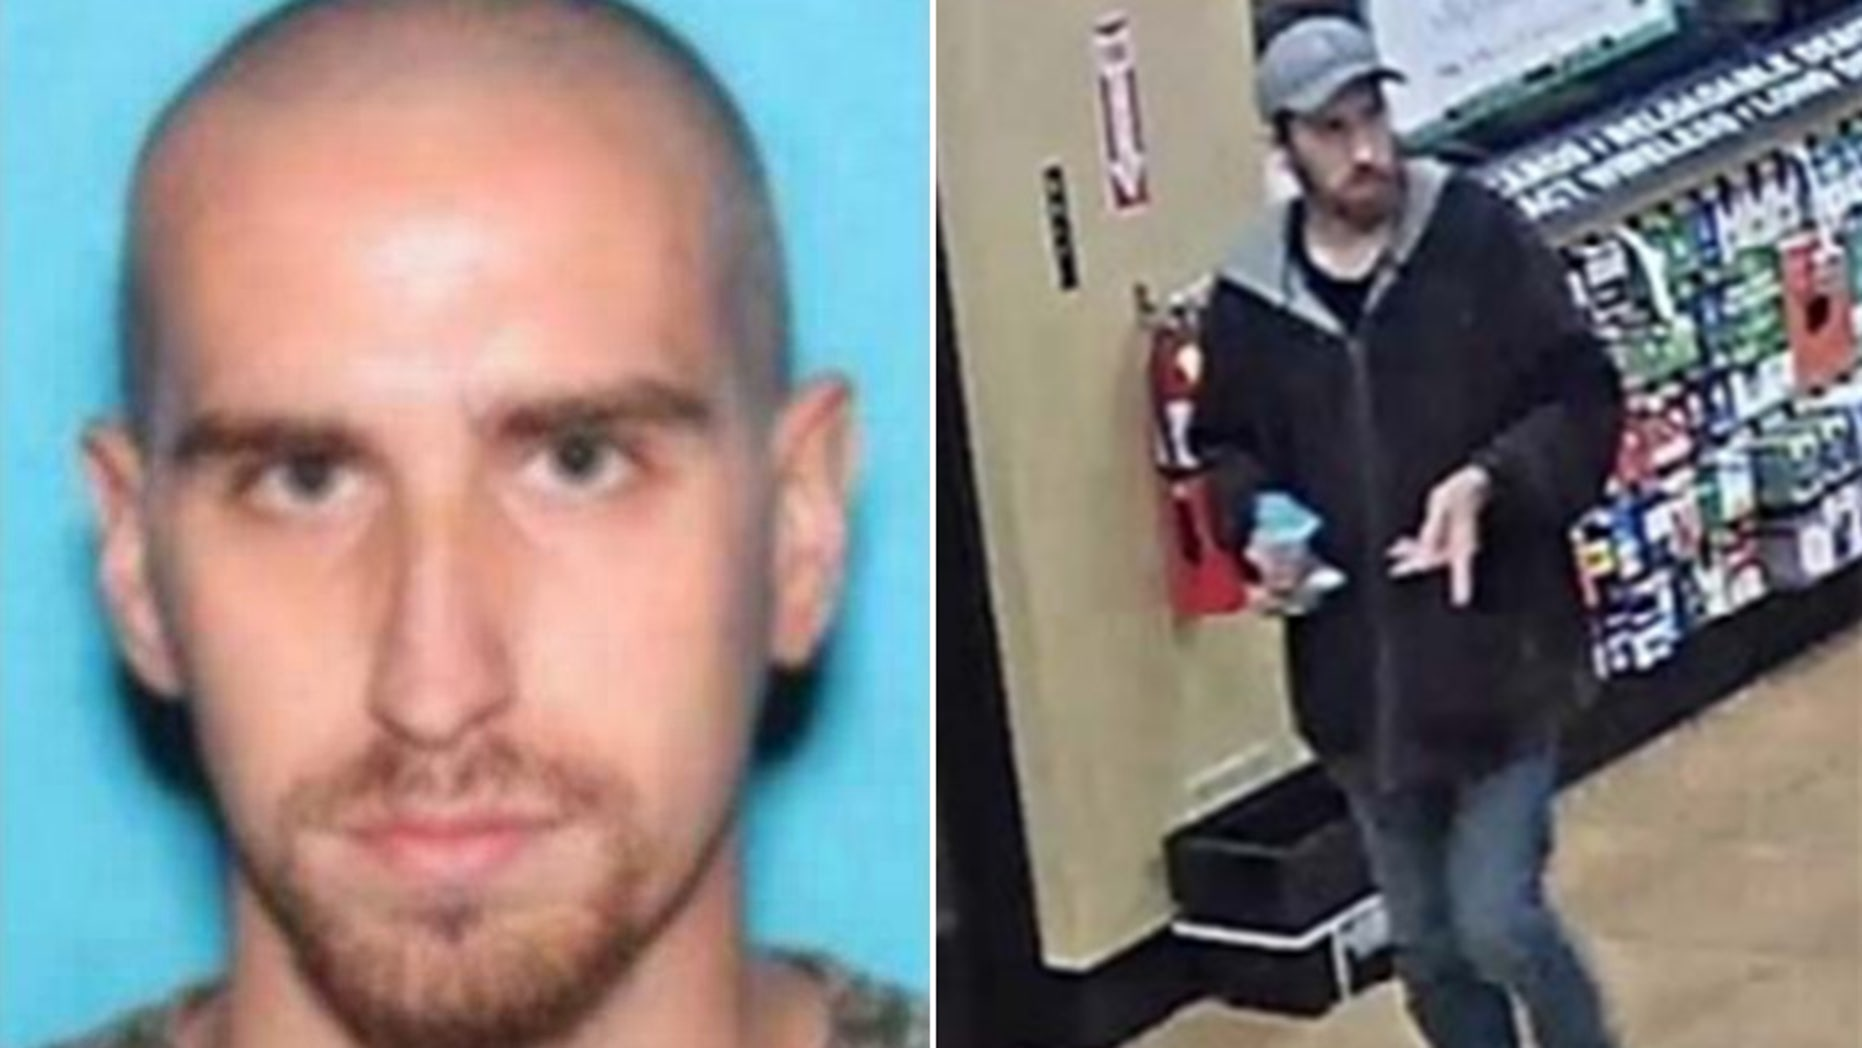 Shawn Christy has been wanted by federal authorities for months and is believed to be in possession of numerous stolen handguns, the FBI says.